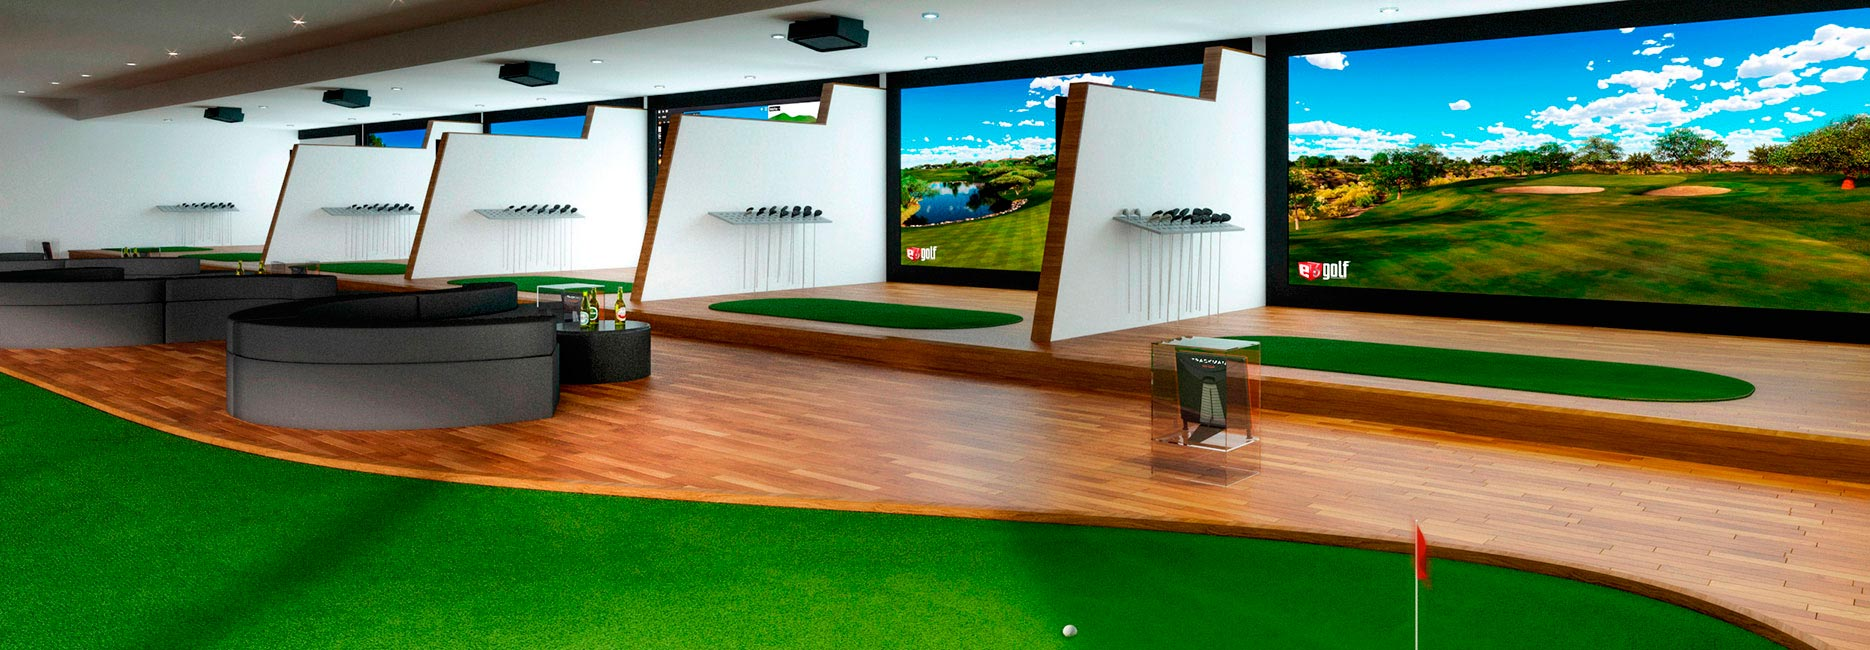 Golf Simulator For Sale >> How Much Does A Golf Simulator Cost And Is It Worth It Hombre